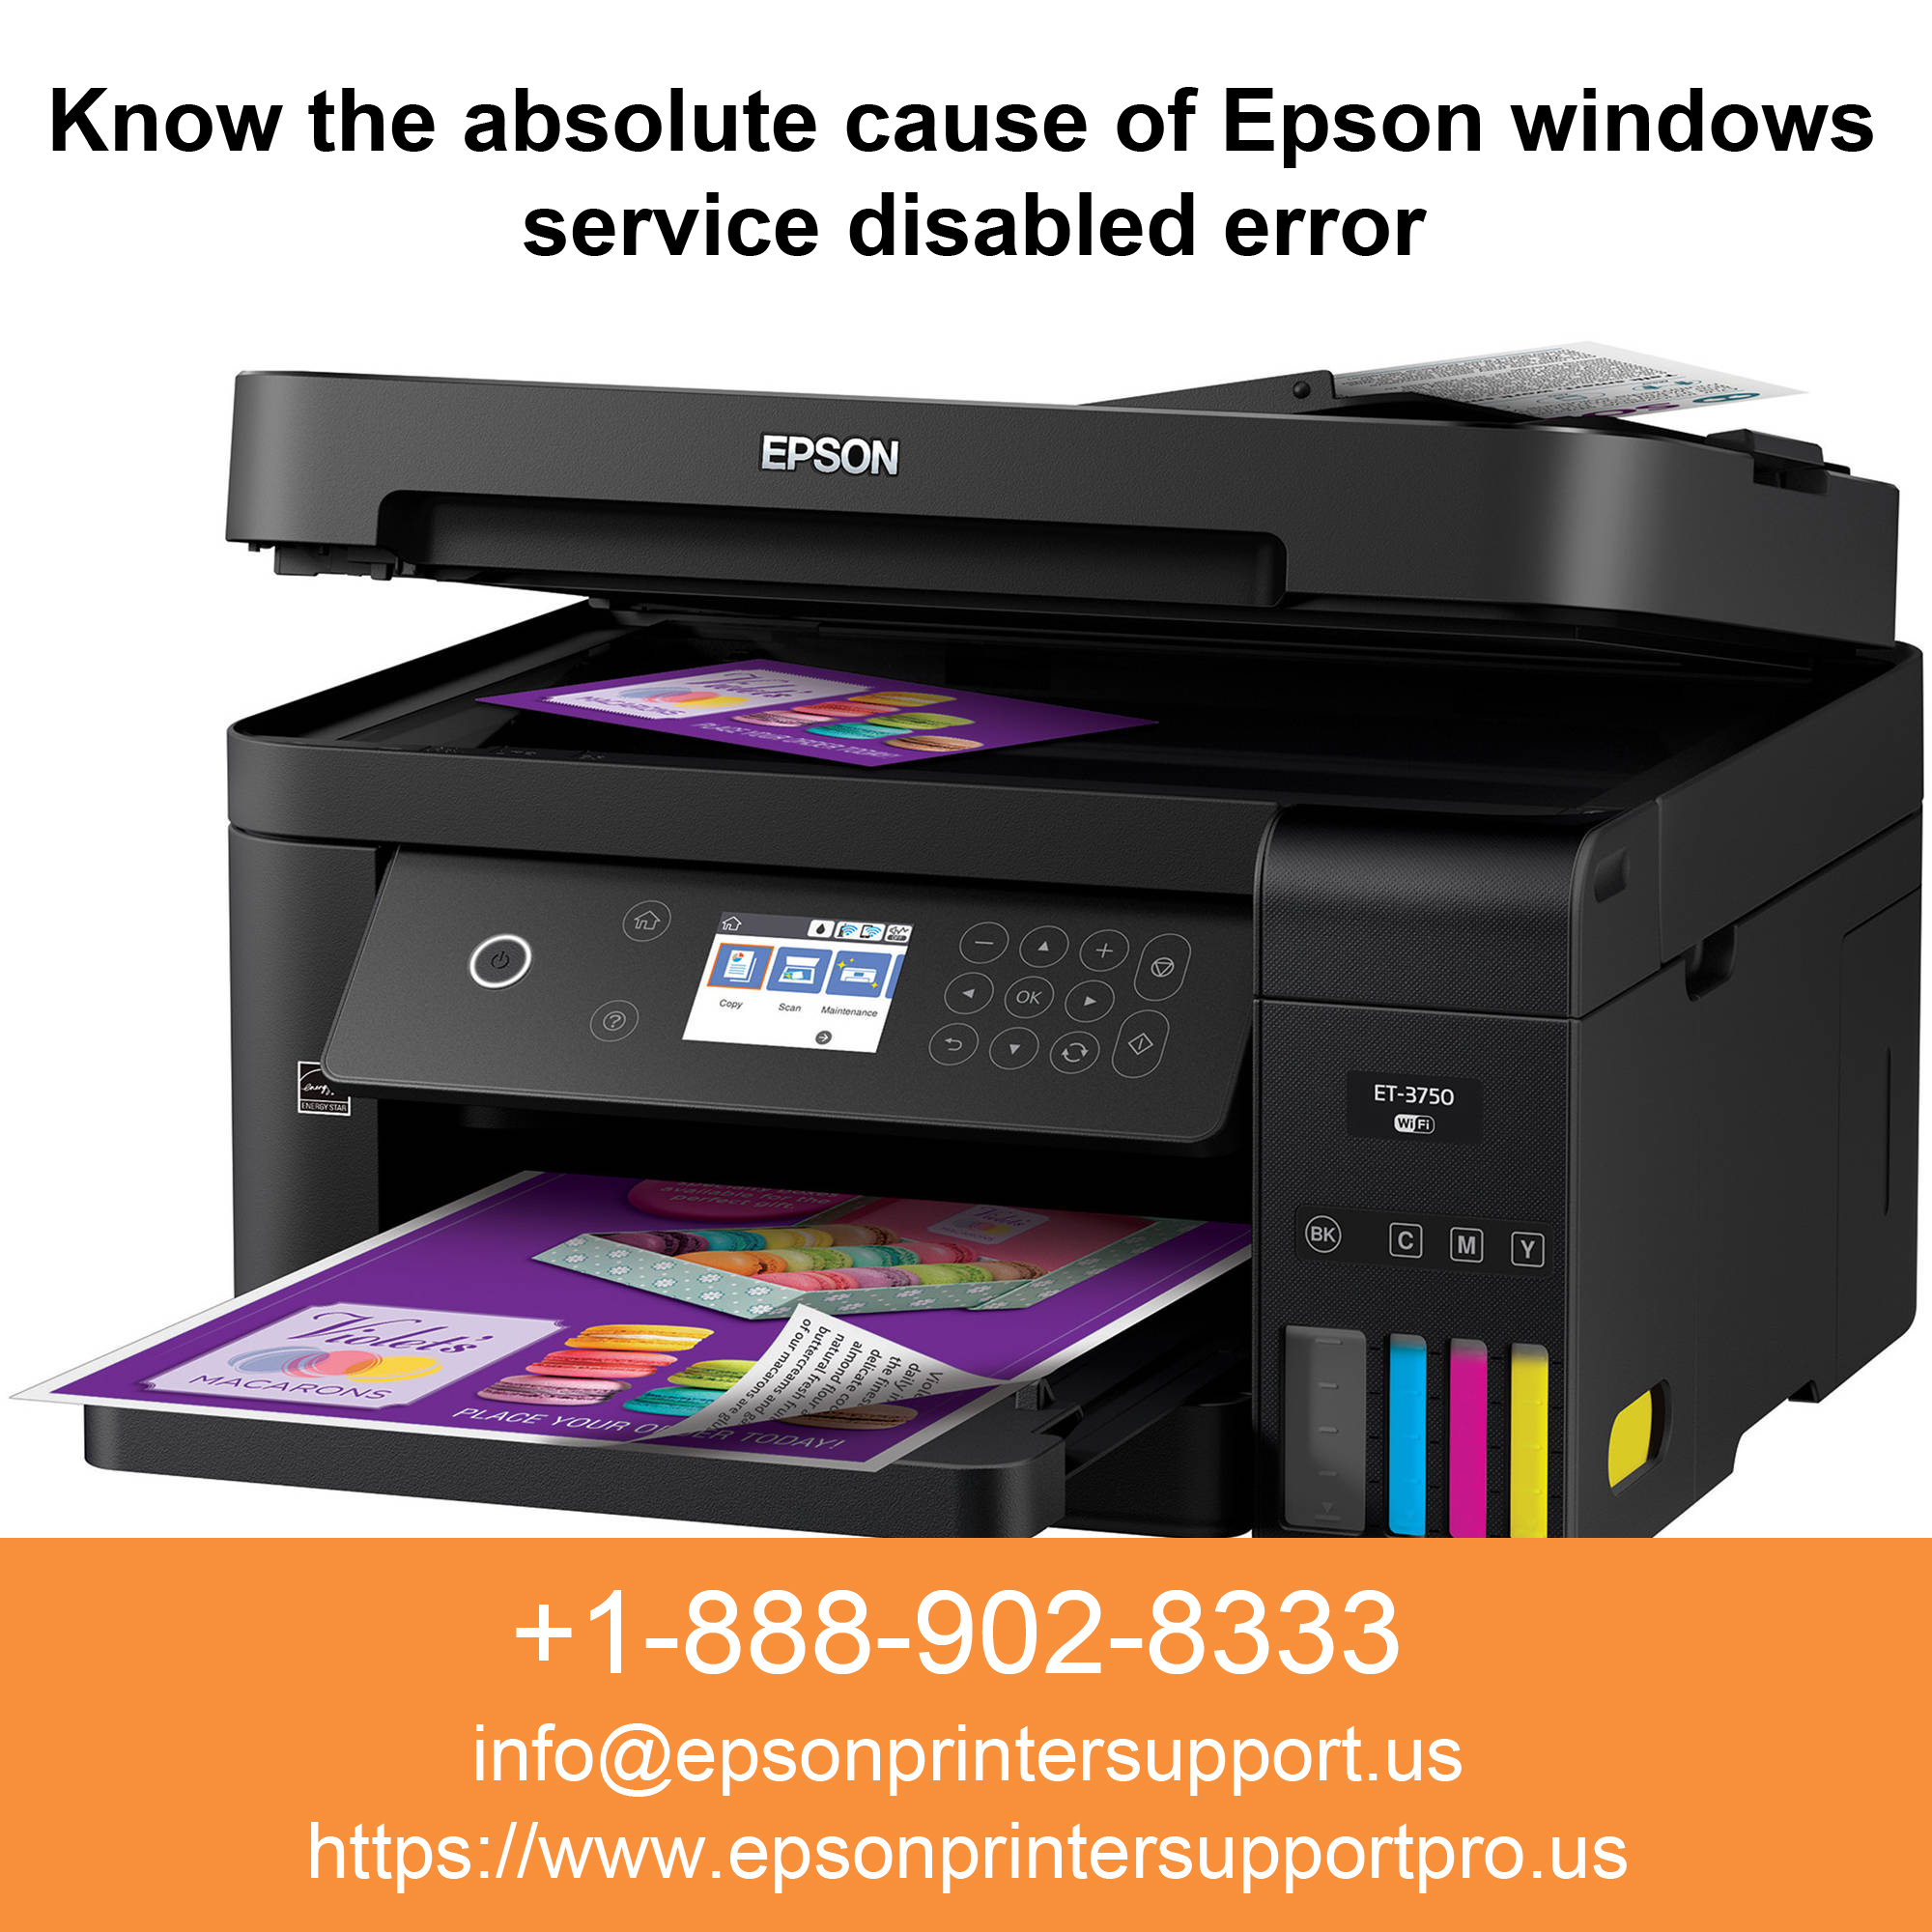 Know the absolute cause of Epson windows service disabled error